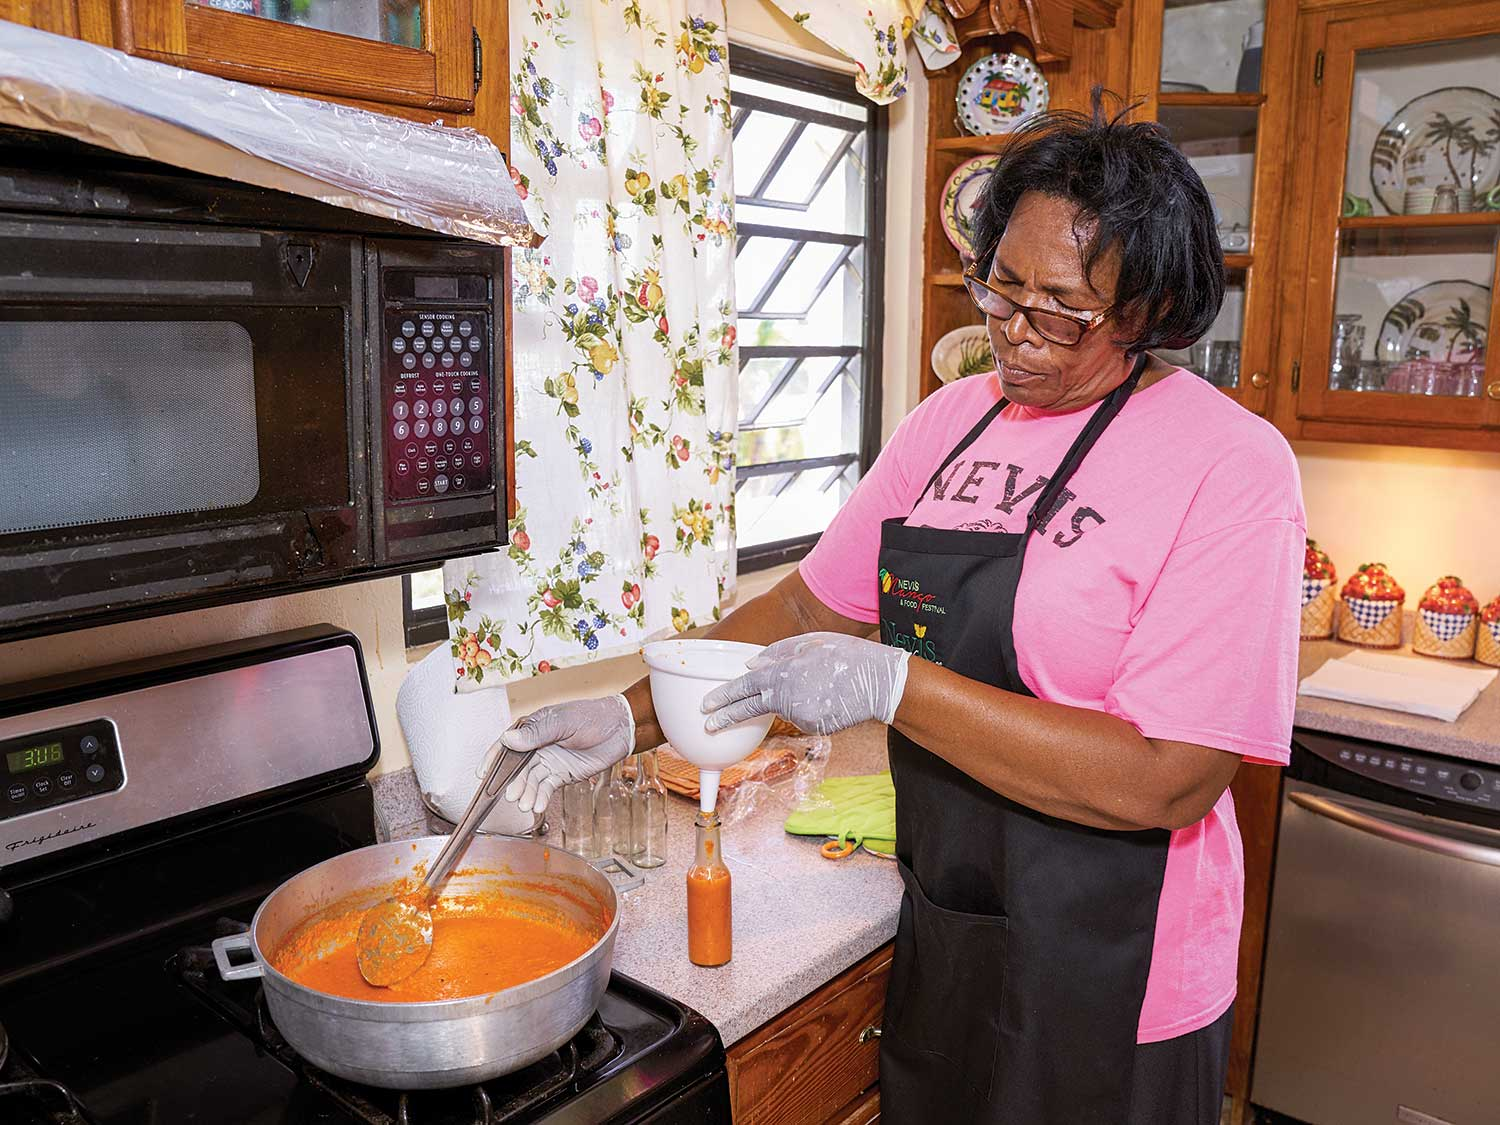 Our New Favorite Hot Sauces are Made in Home Kitchens on the Island of Nevis